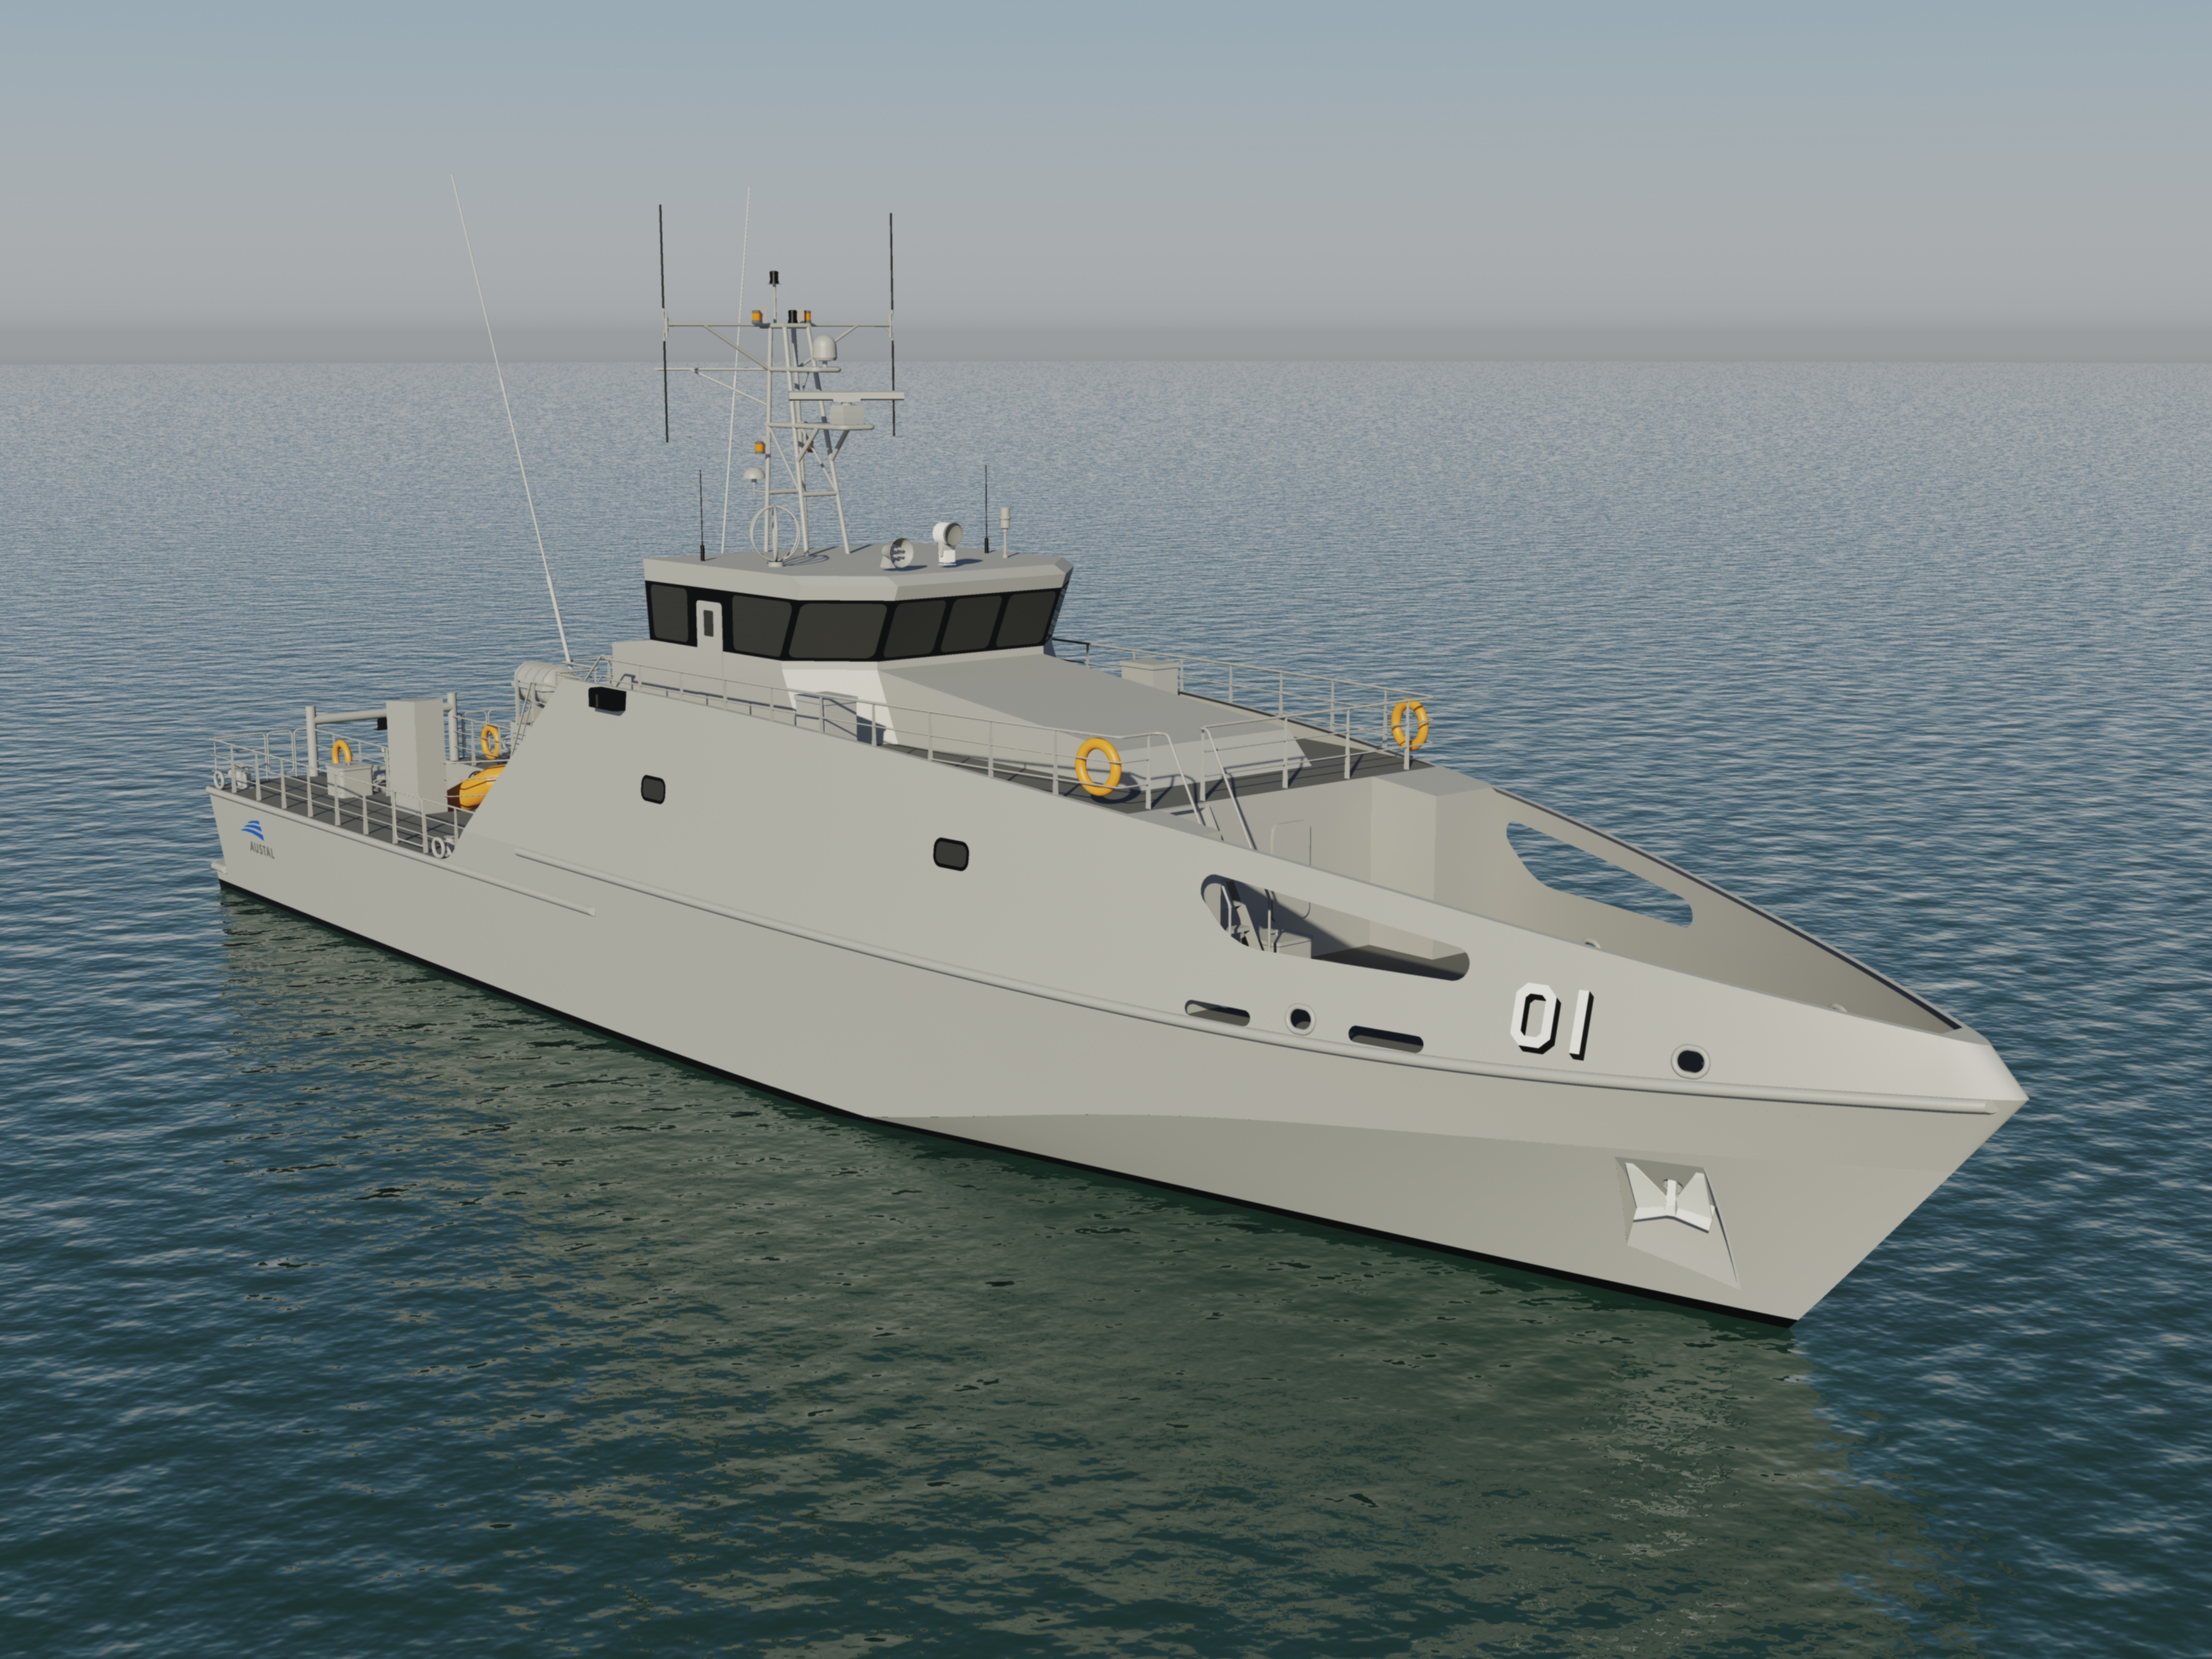 The new Pacific Patrol Boat